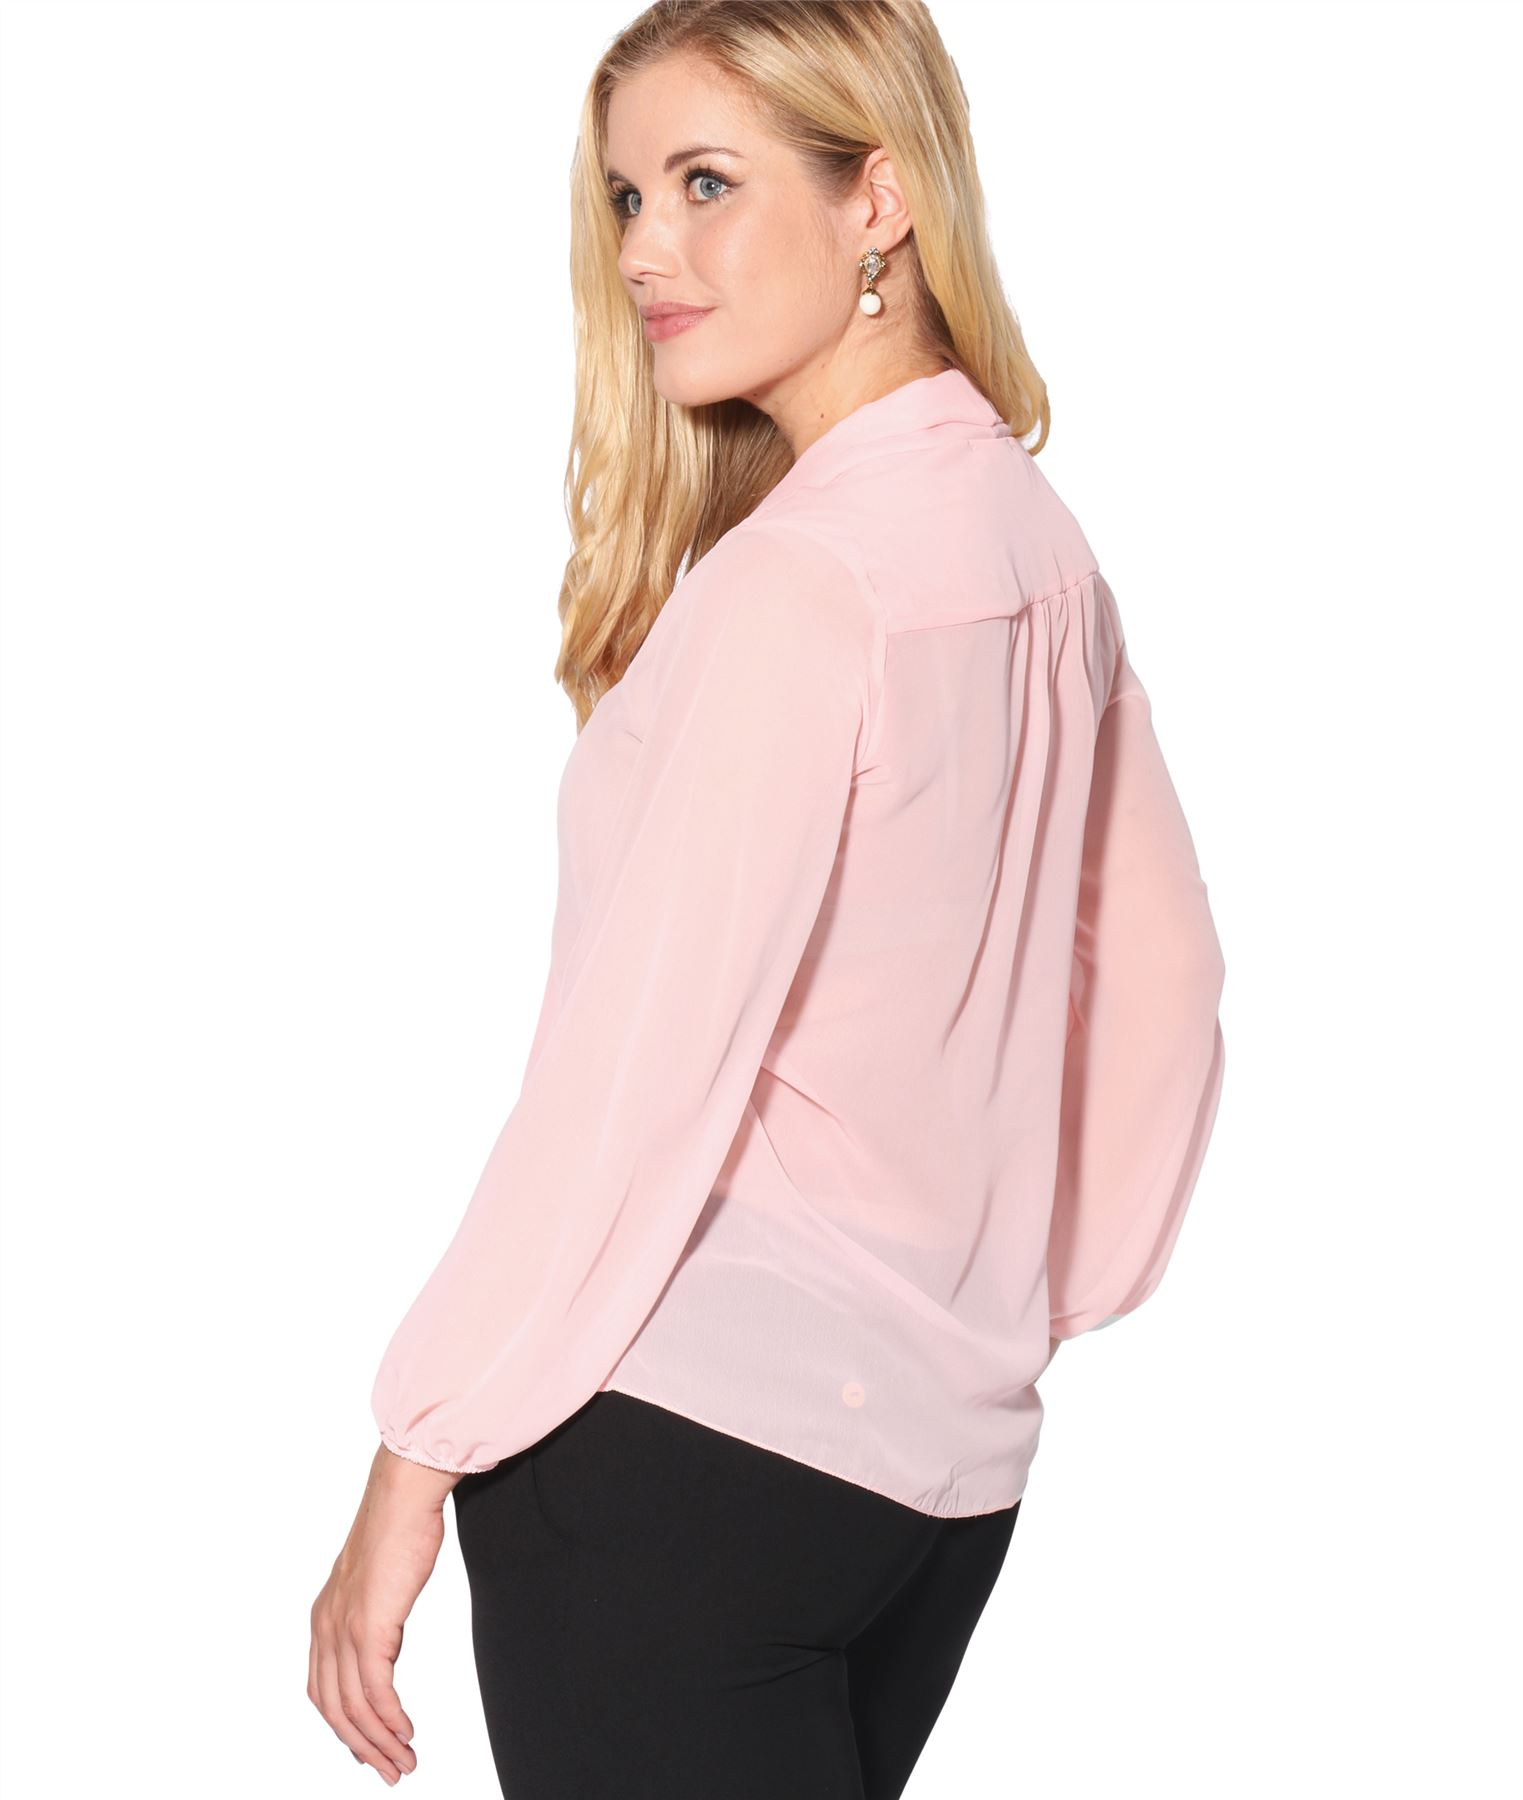 Womens-Ladies-Chiffon-Blouse-Long-Sleeve-Pussy-Bow-Top-Plain-Shirt-Office-Party thumbnail 3